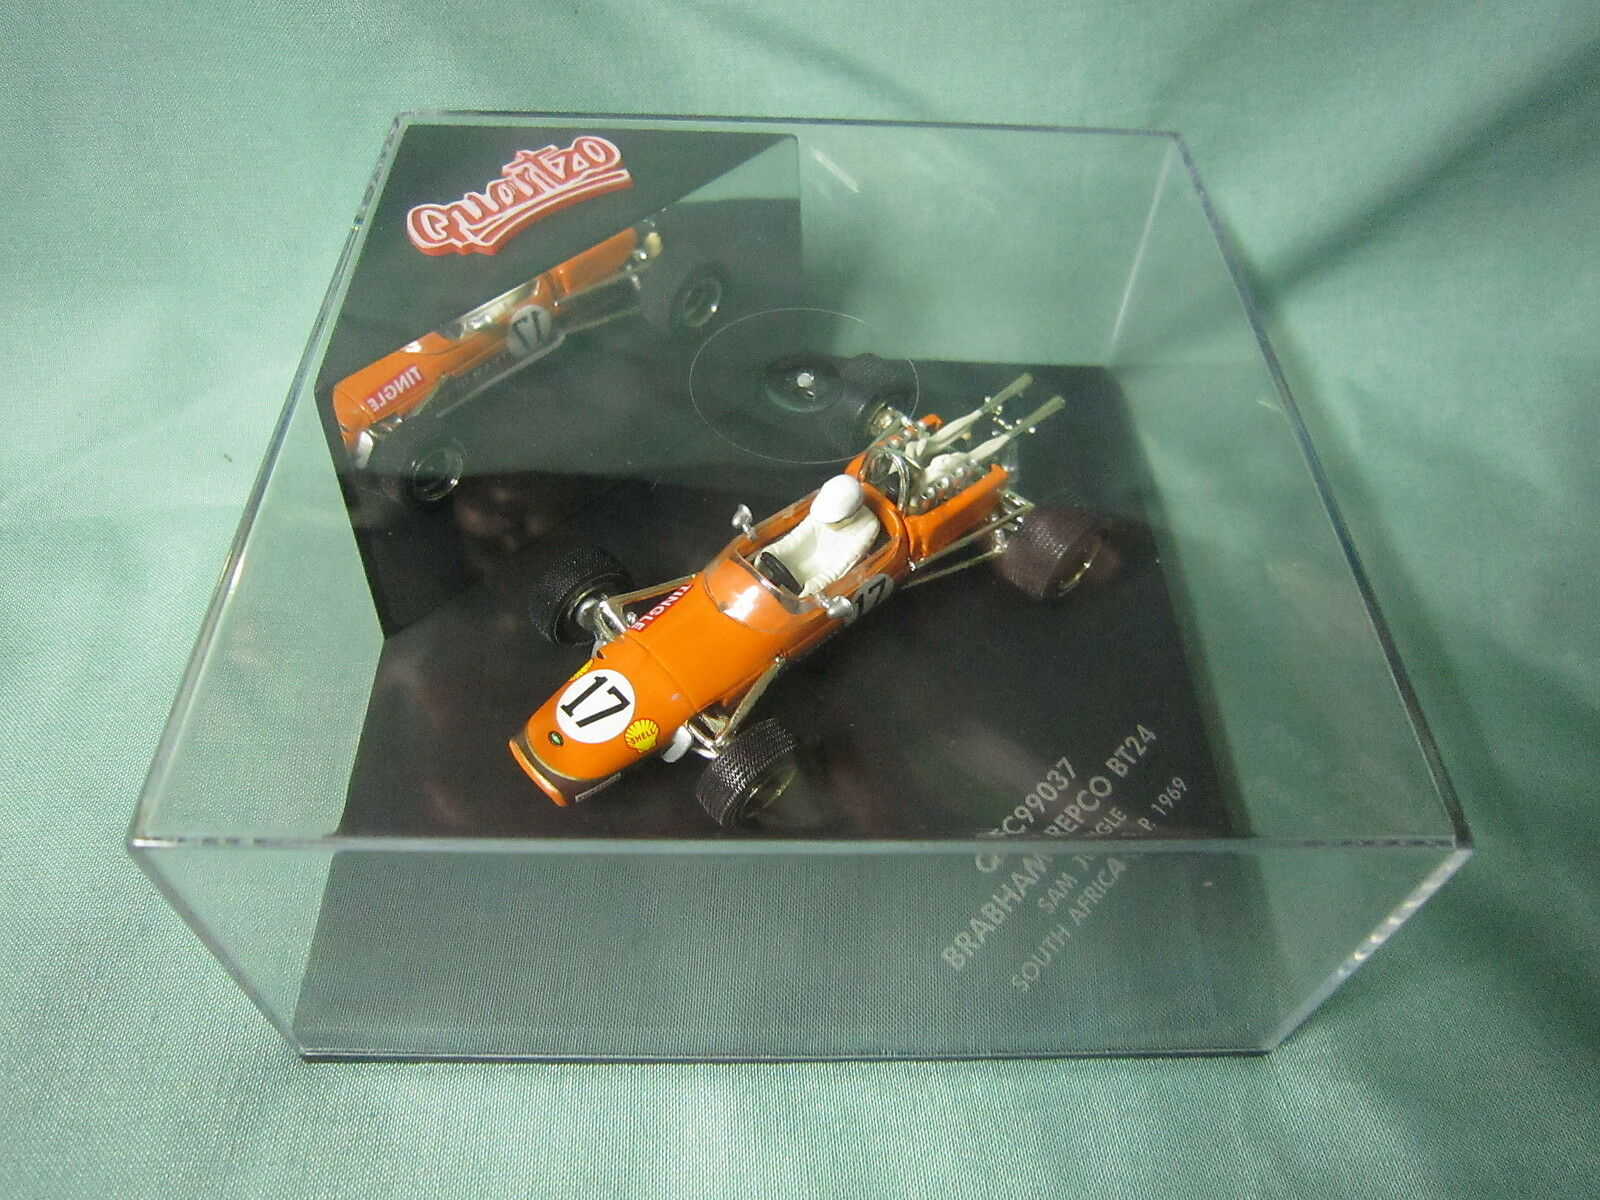 DV5960 QUARTZO VITESSE BRABHAM REPCO BT24  17 SOUTH AFRICA 1969 TINGLE QFC99037